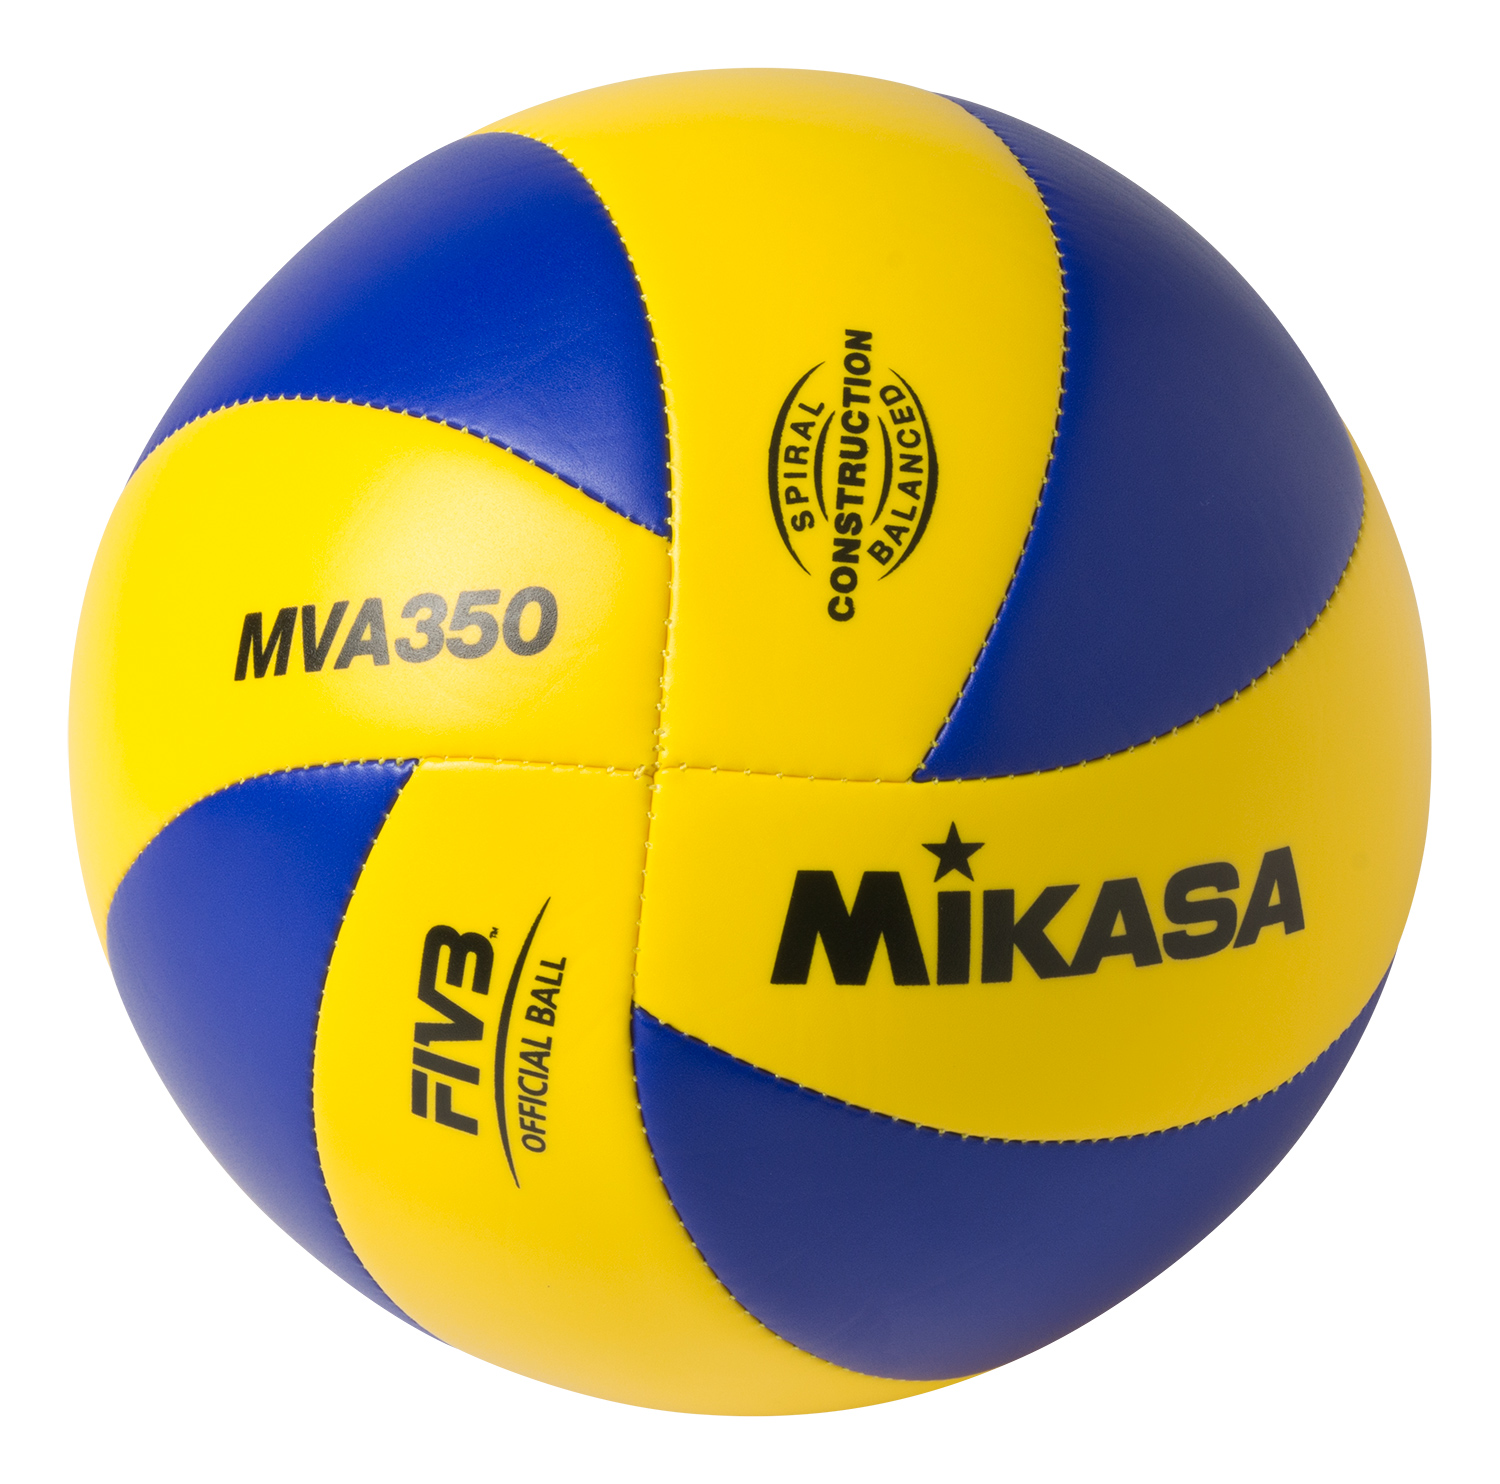 Mikasa FIVB Volleyball Replica Of 2012 Olympic Game Ball